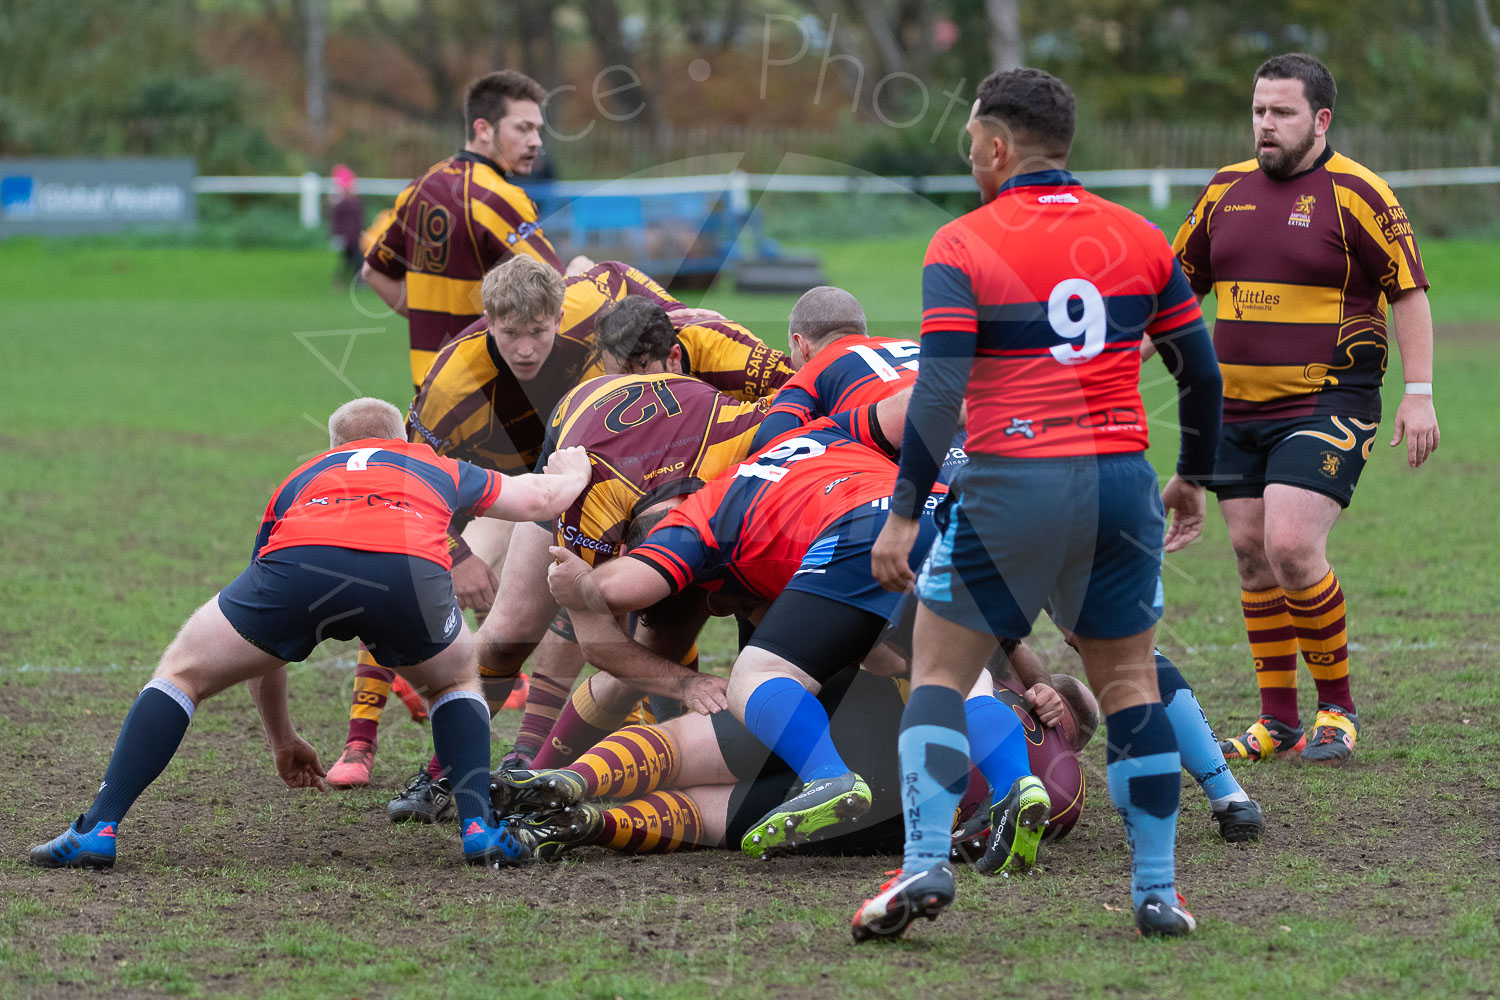 20181027 Amp Extras vs St Neots 2nd XV #2262